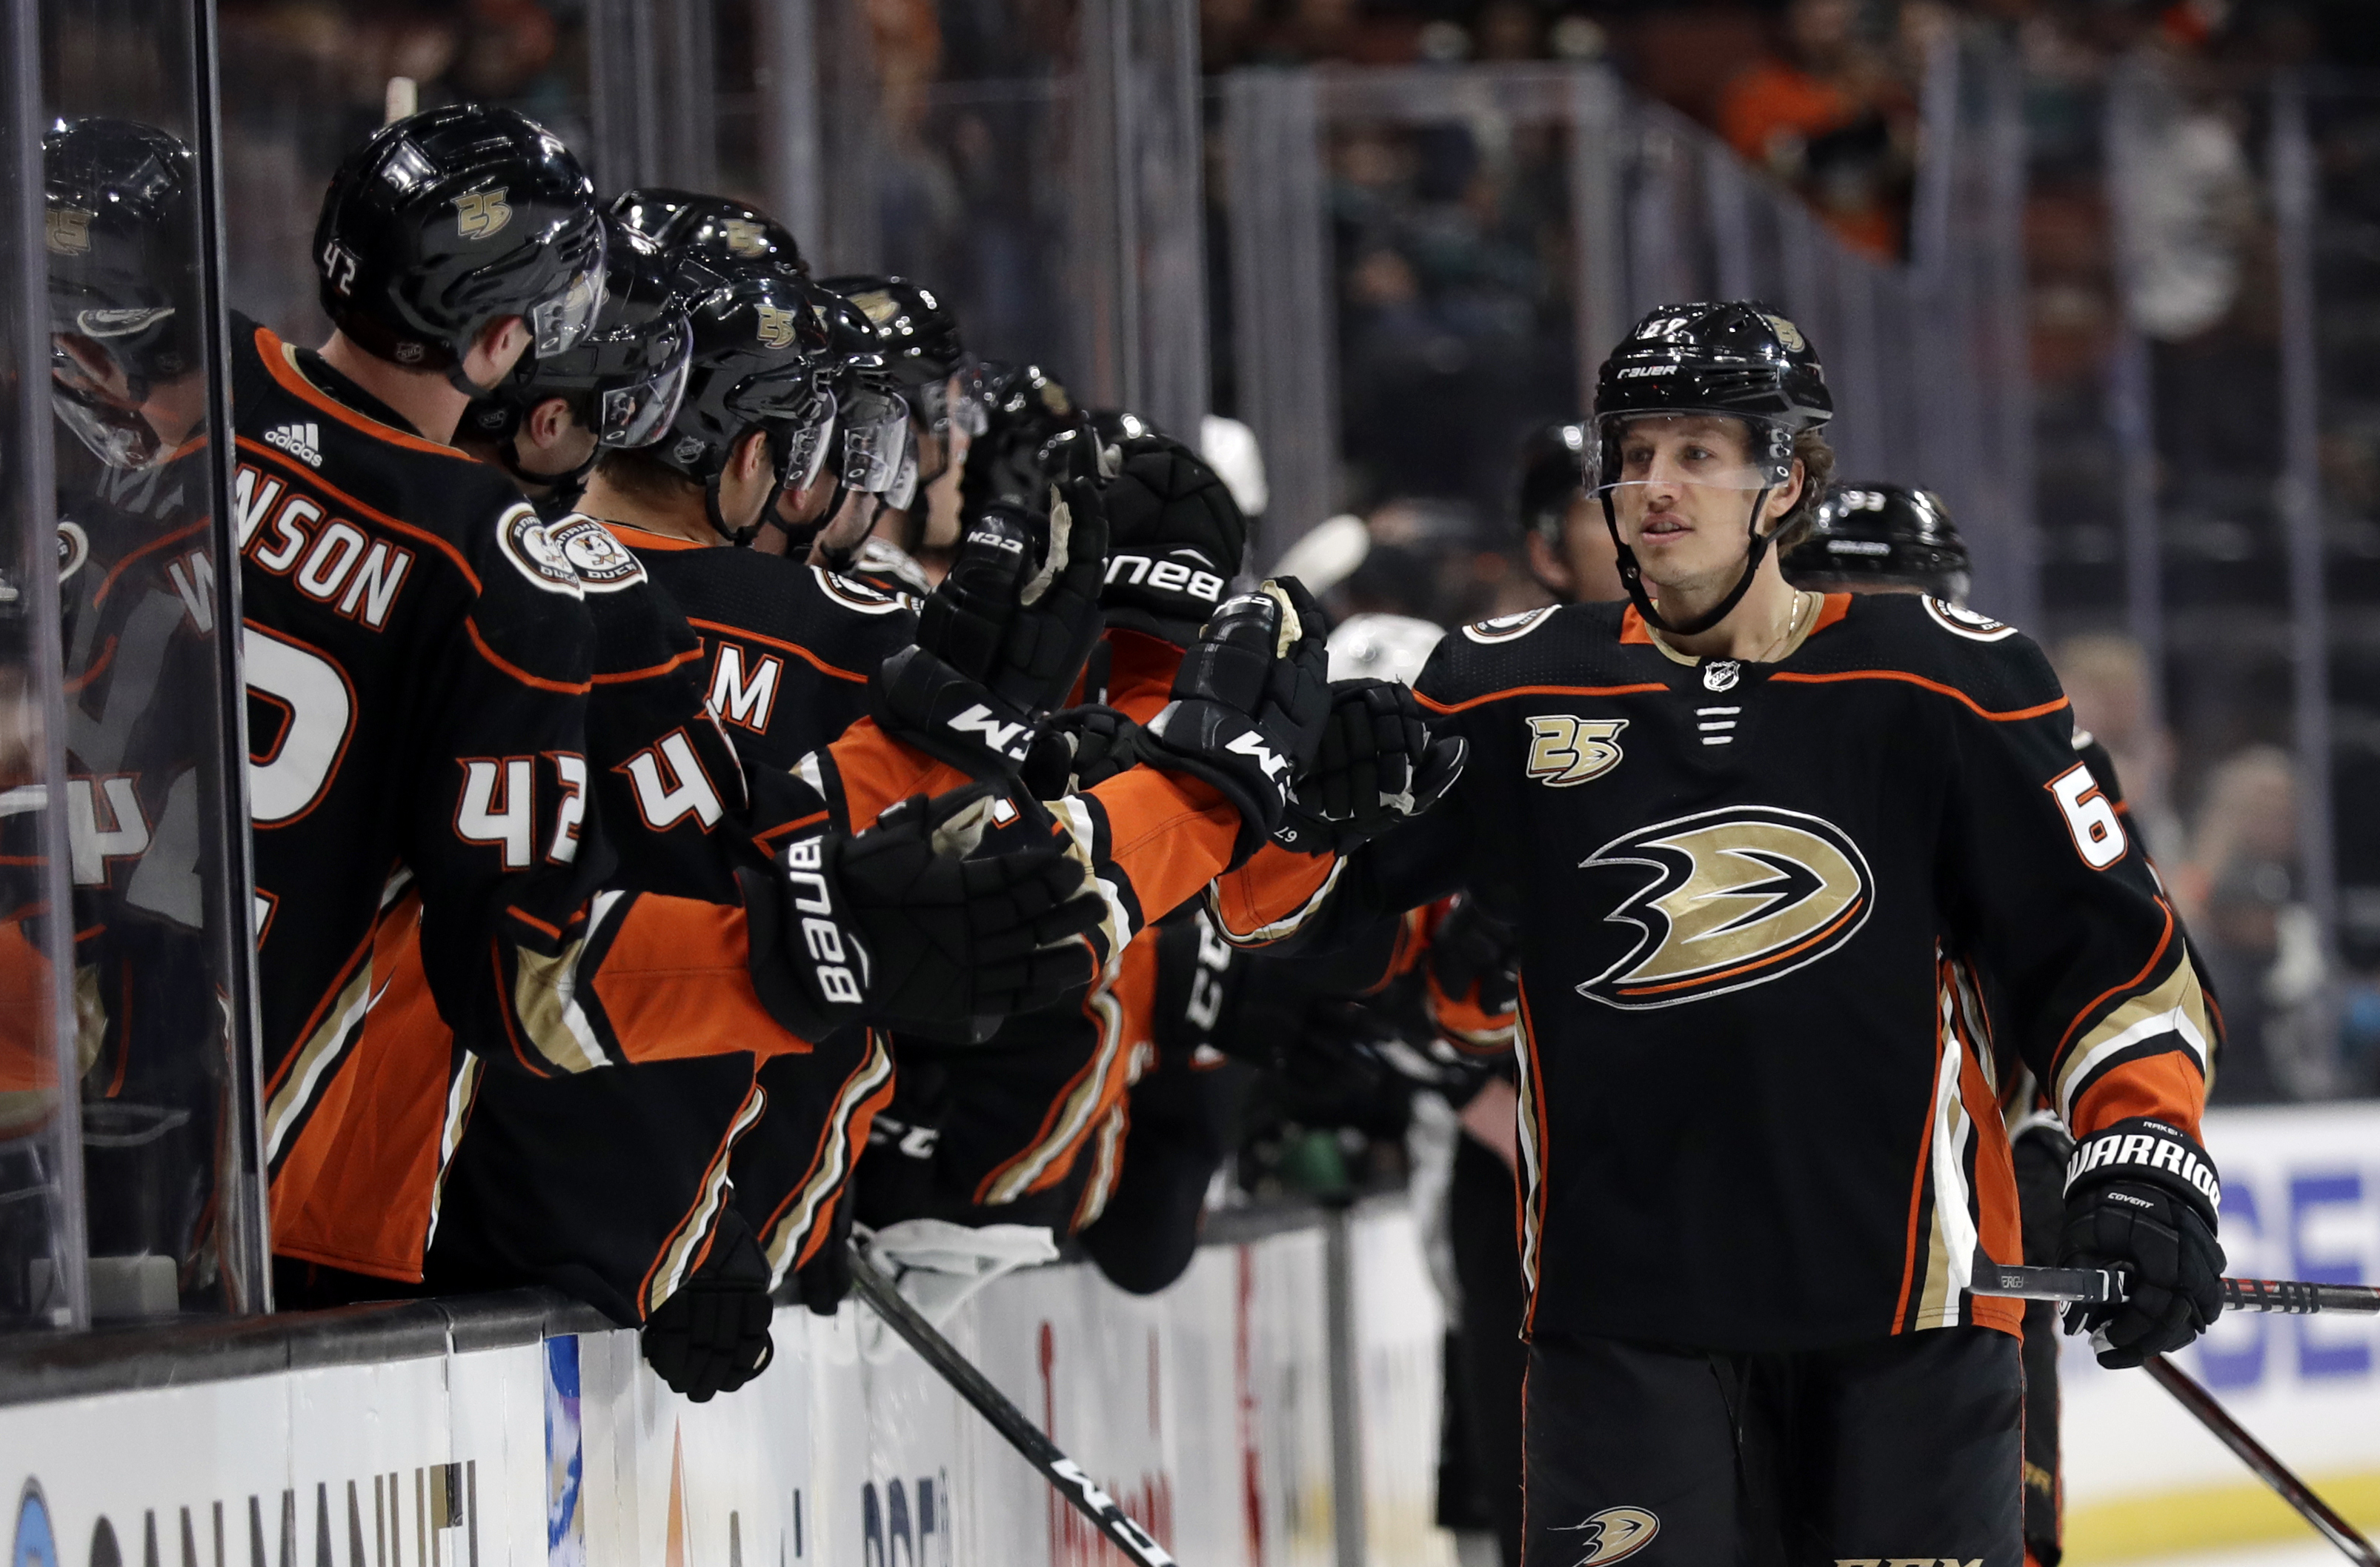 Silfverberg's OT goal lifts Ducks to 4-3 win over Sharks